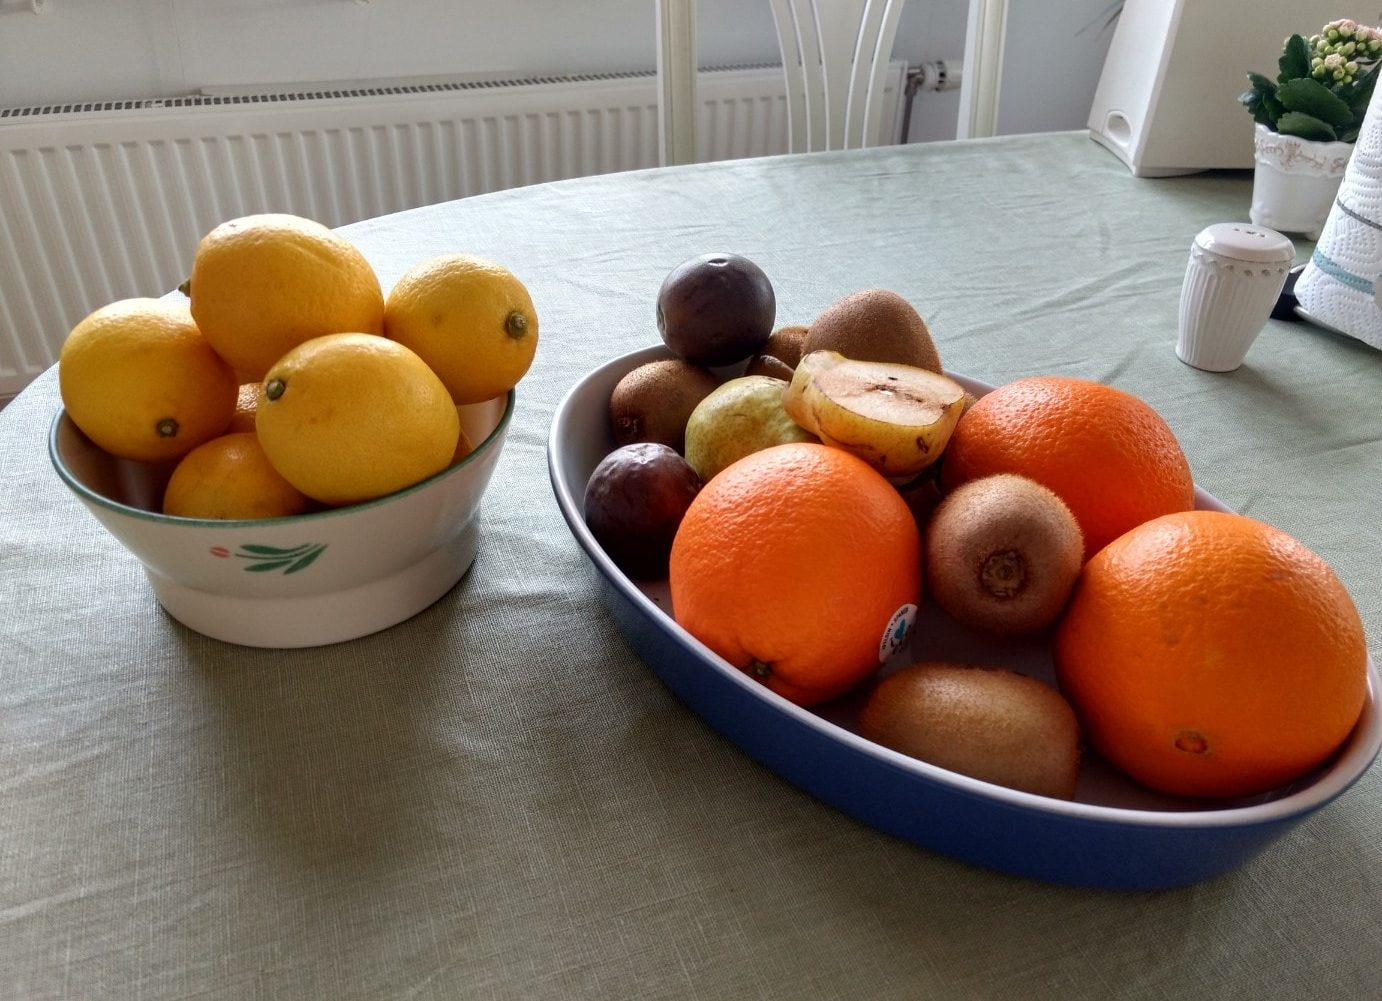 Fruits and lemons on table